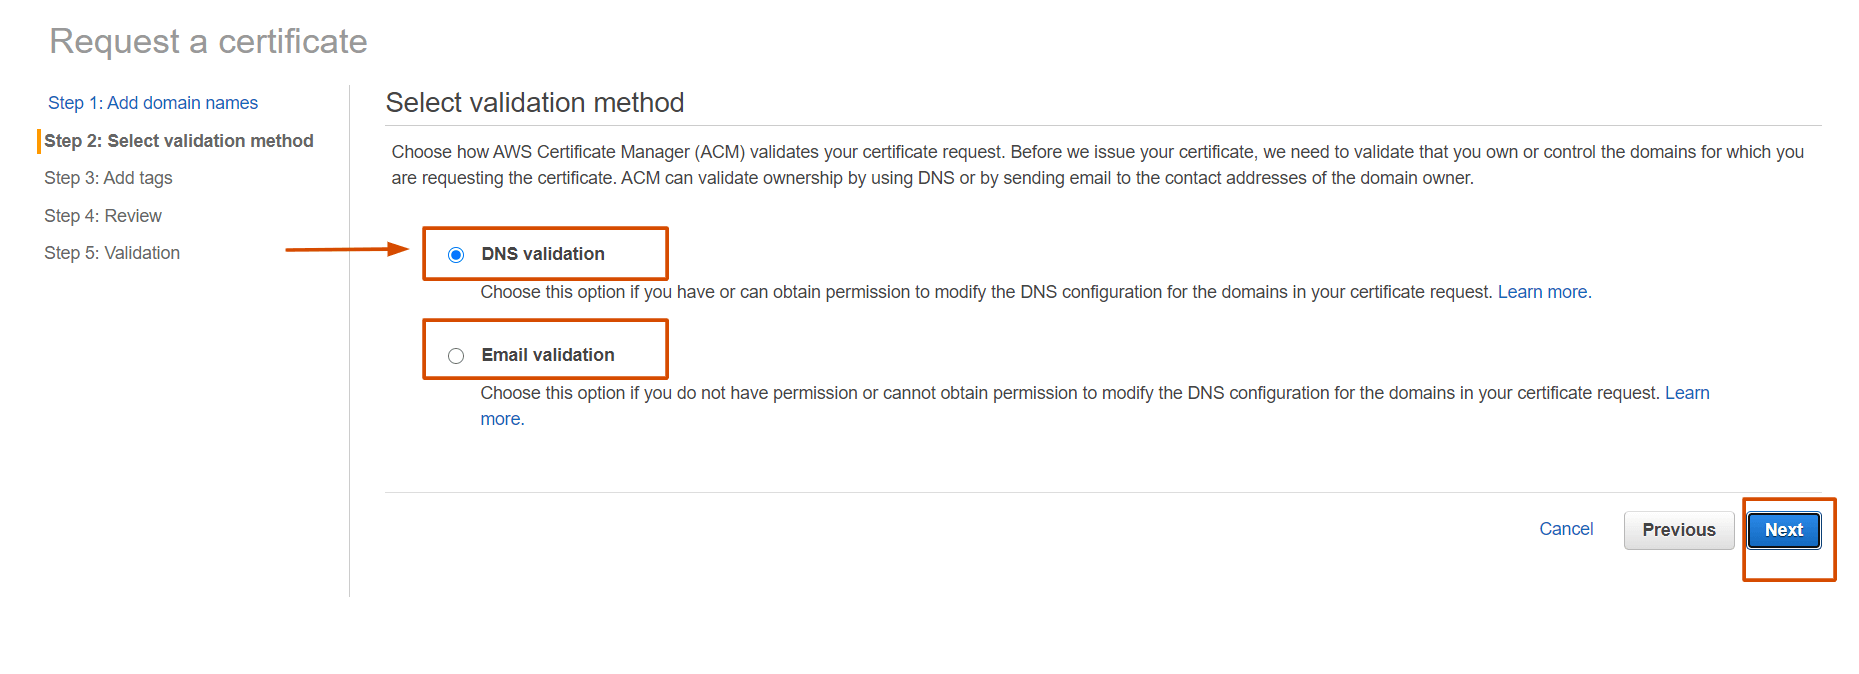 DNS Validation and Email Validation